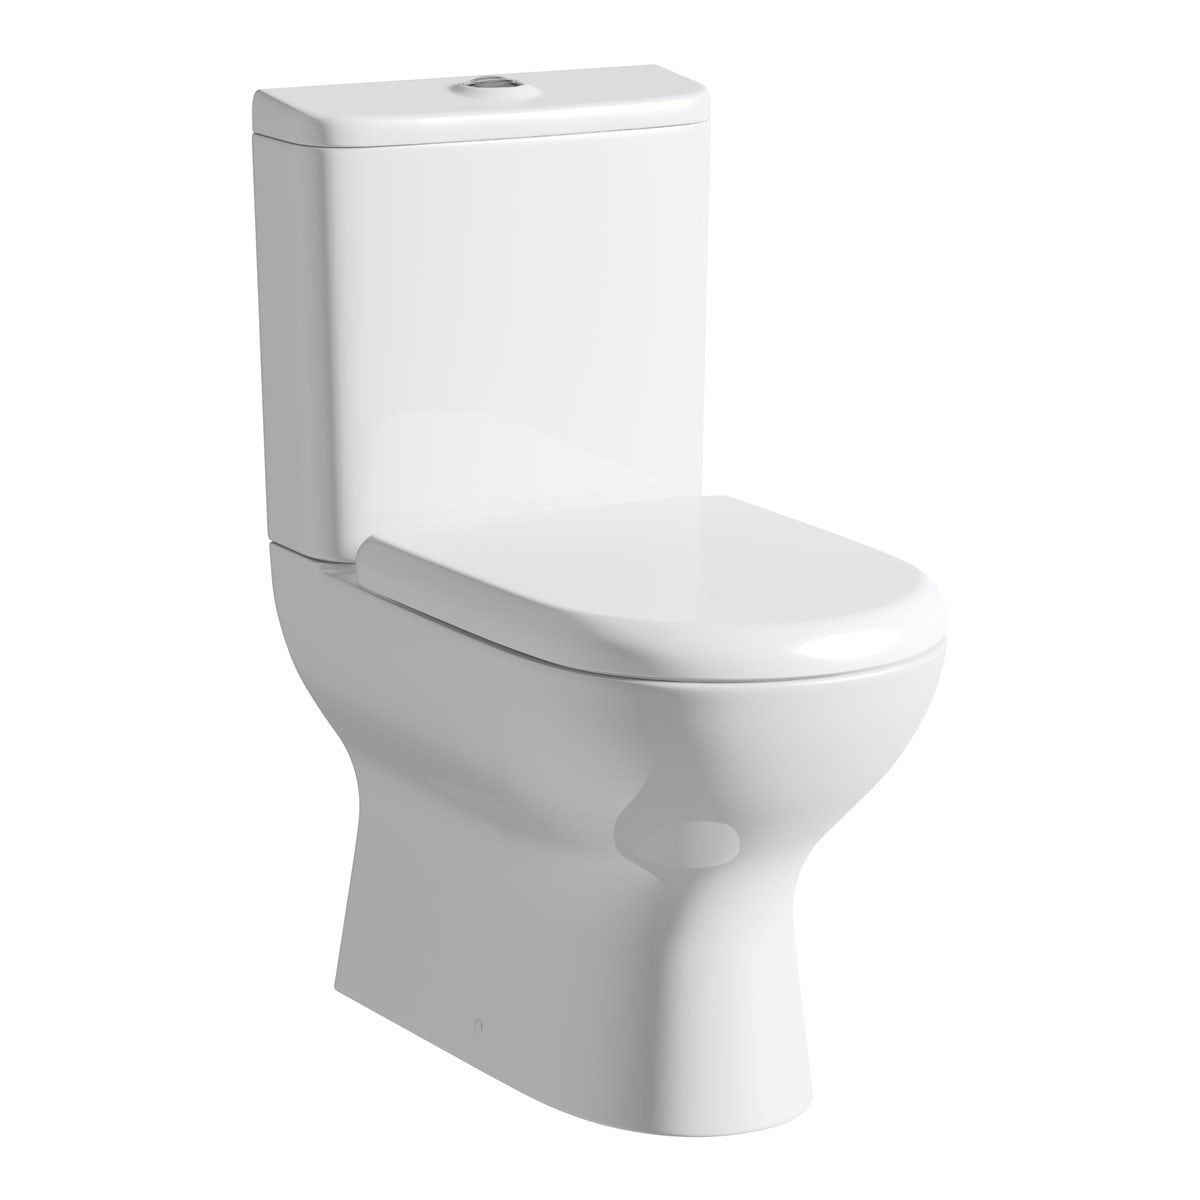 Heath Close Coupled Toilet inc Luxury Soft Close Seat